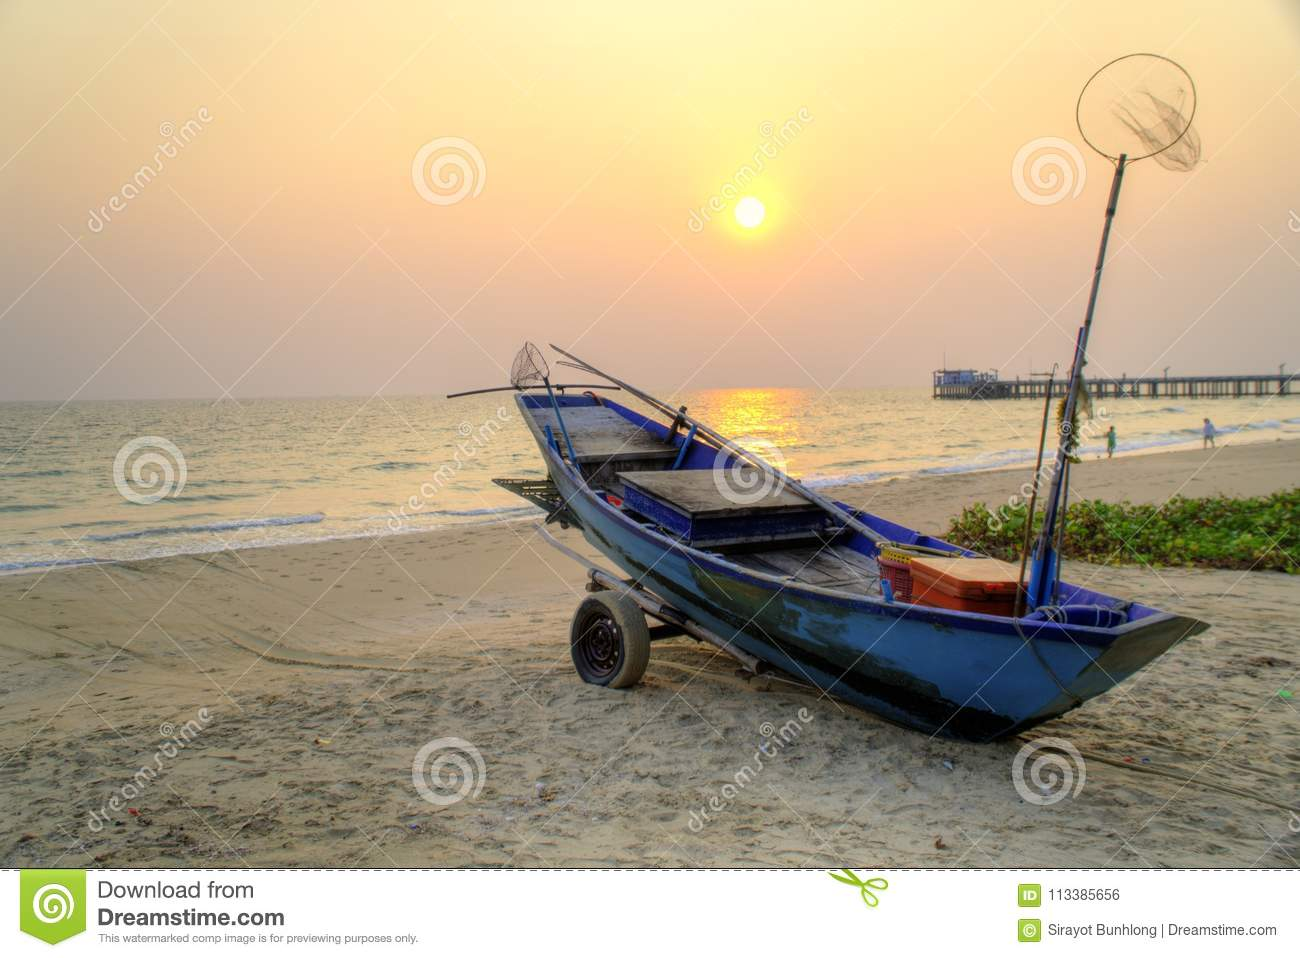 Fishing Boat And Tractor At Sunset Stock Image - Image of